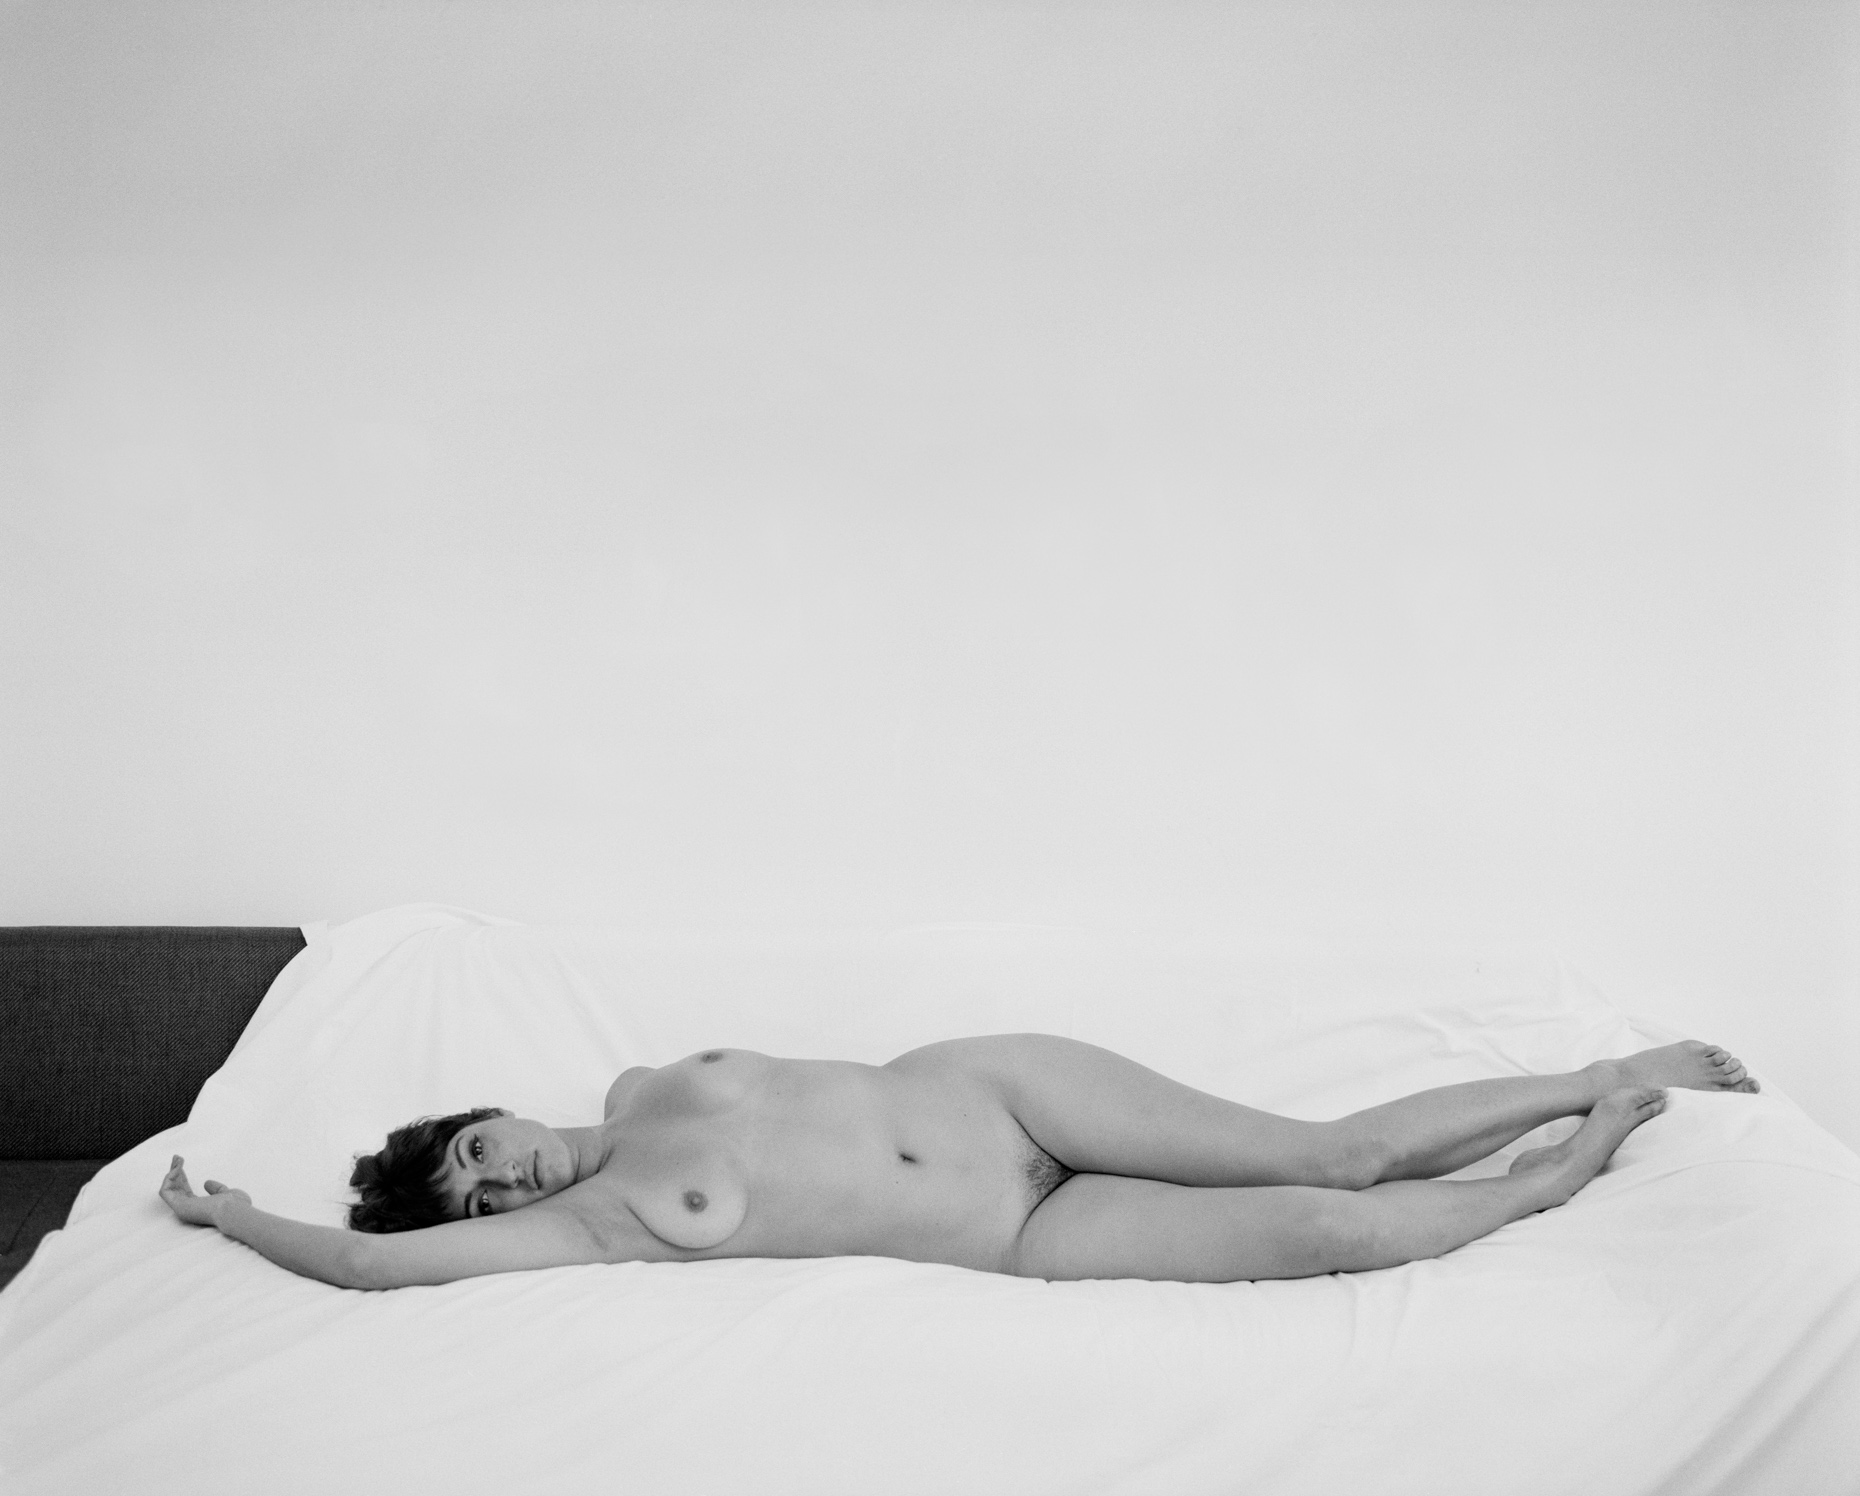 Axel Bernstorff, Collectable limited edition prints. Reclining Nude. Detail. Naked form. Sensual. Beauty. Allure.